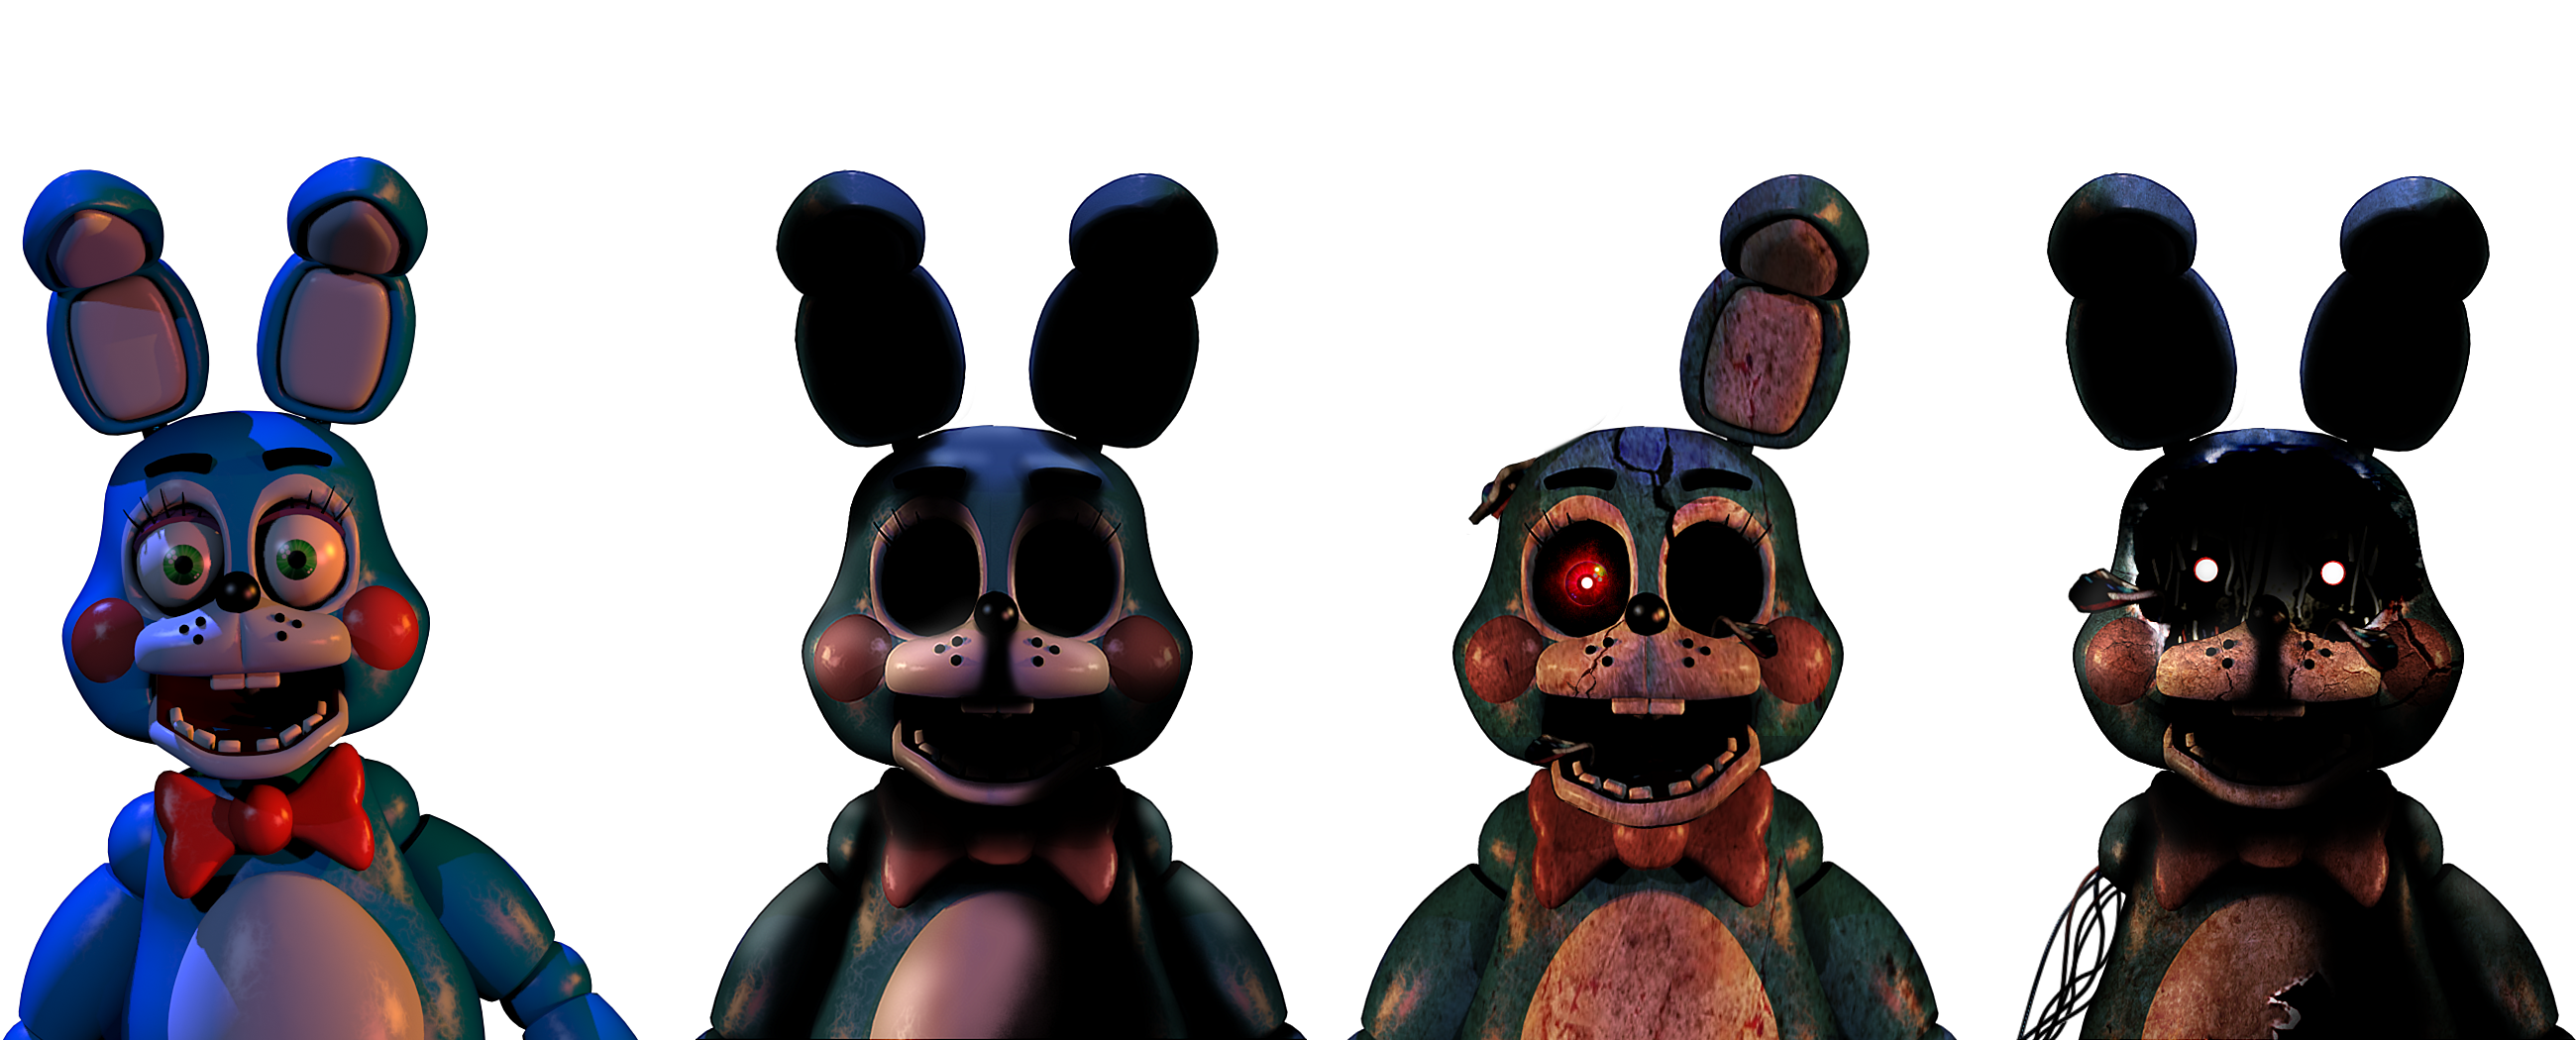 bonnie toy freddy 39 s nights at five